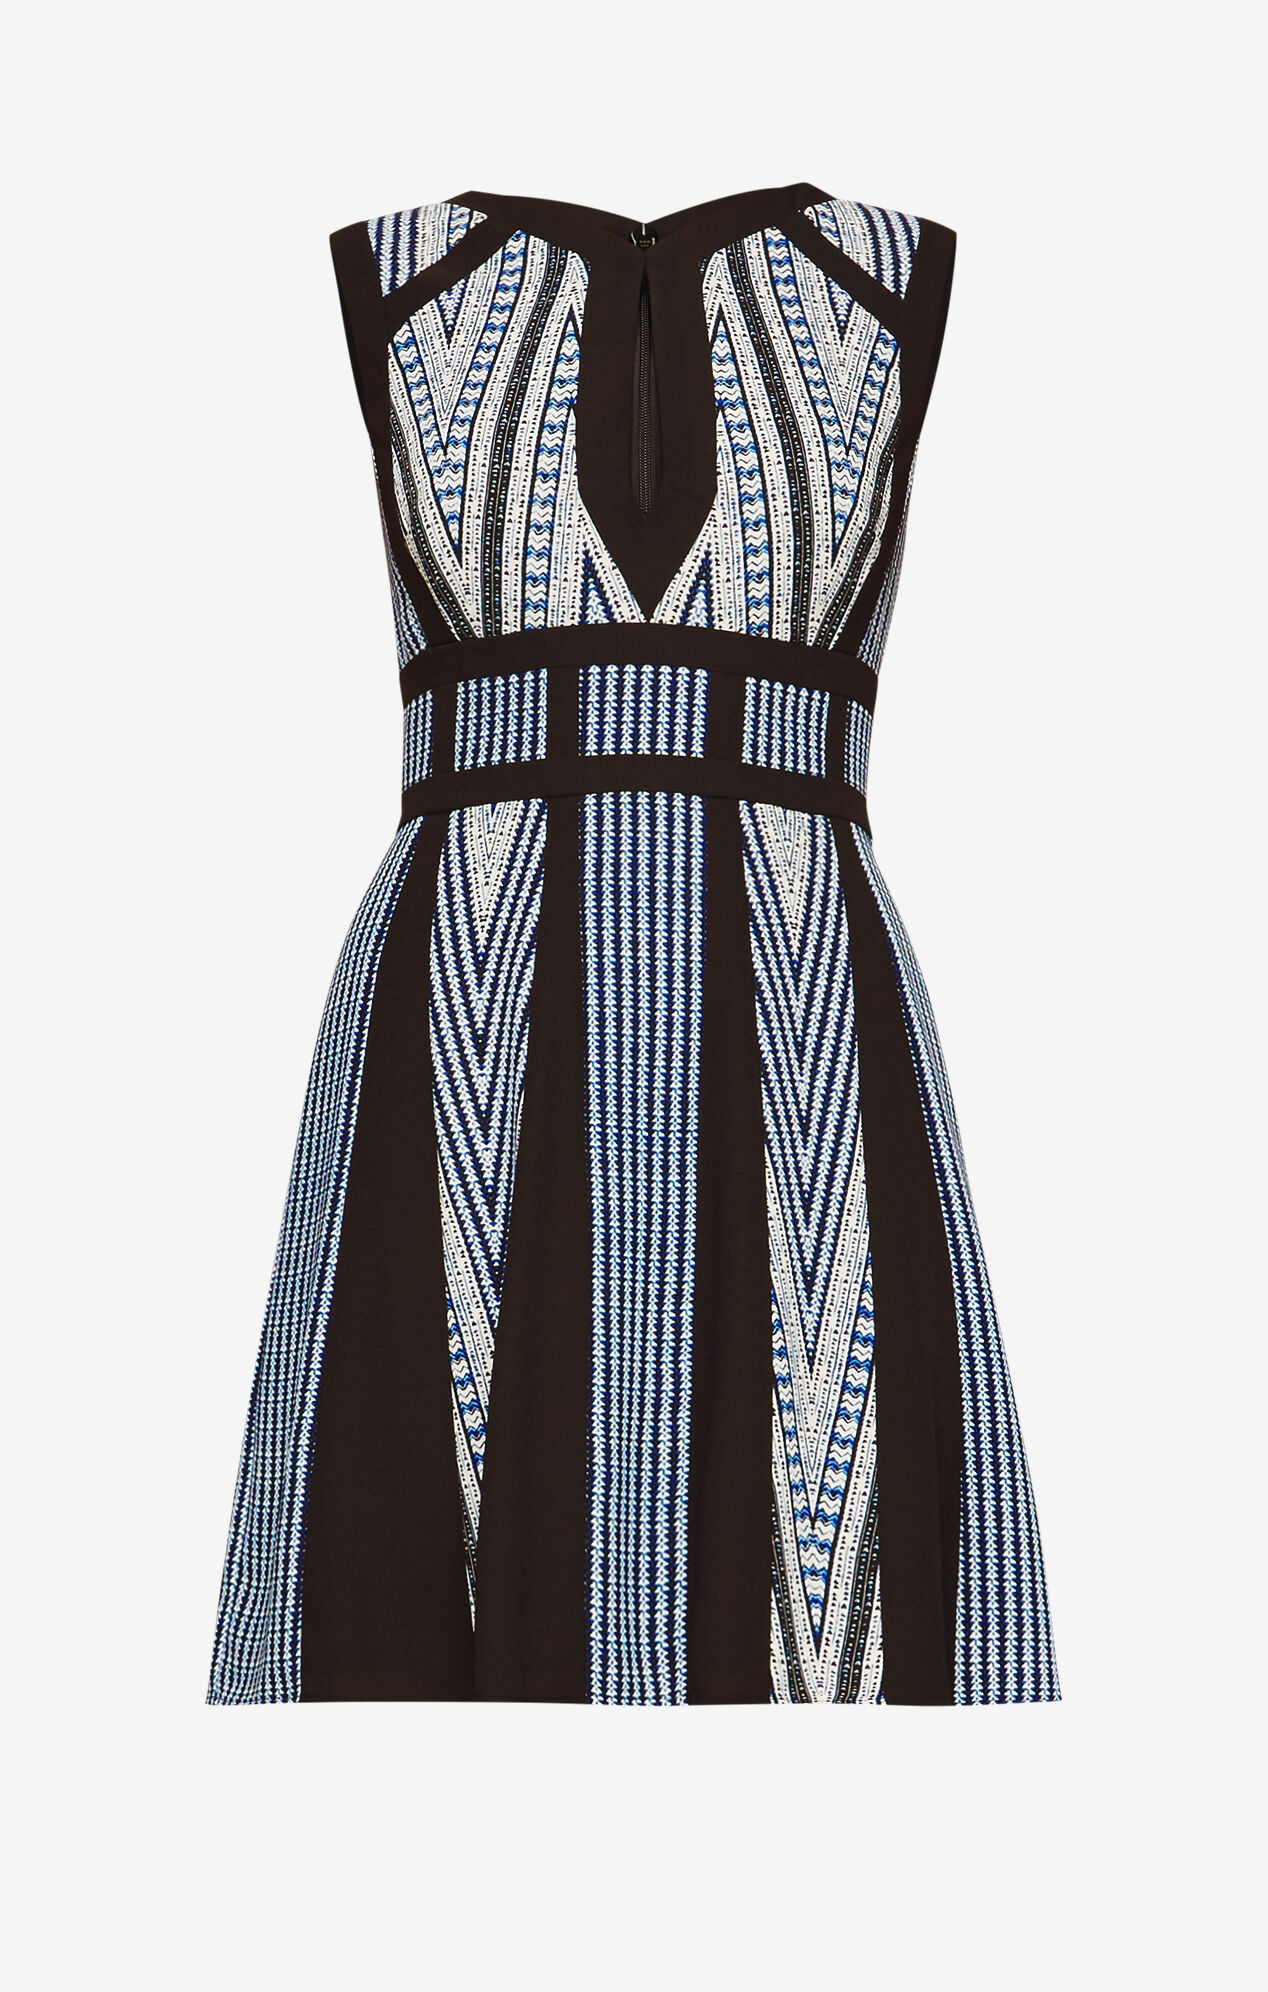 Perla Print-Blocked Dress